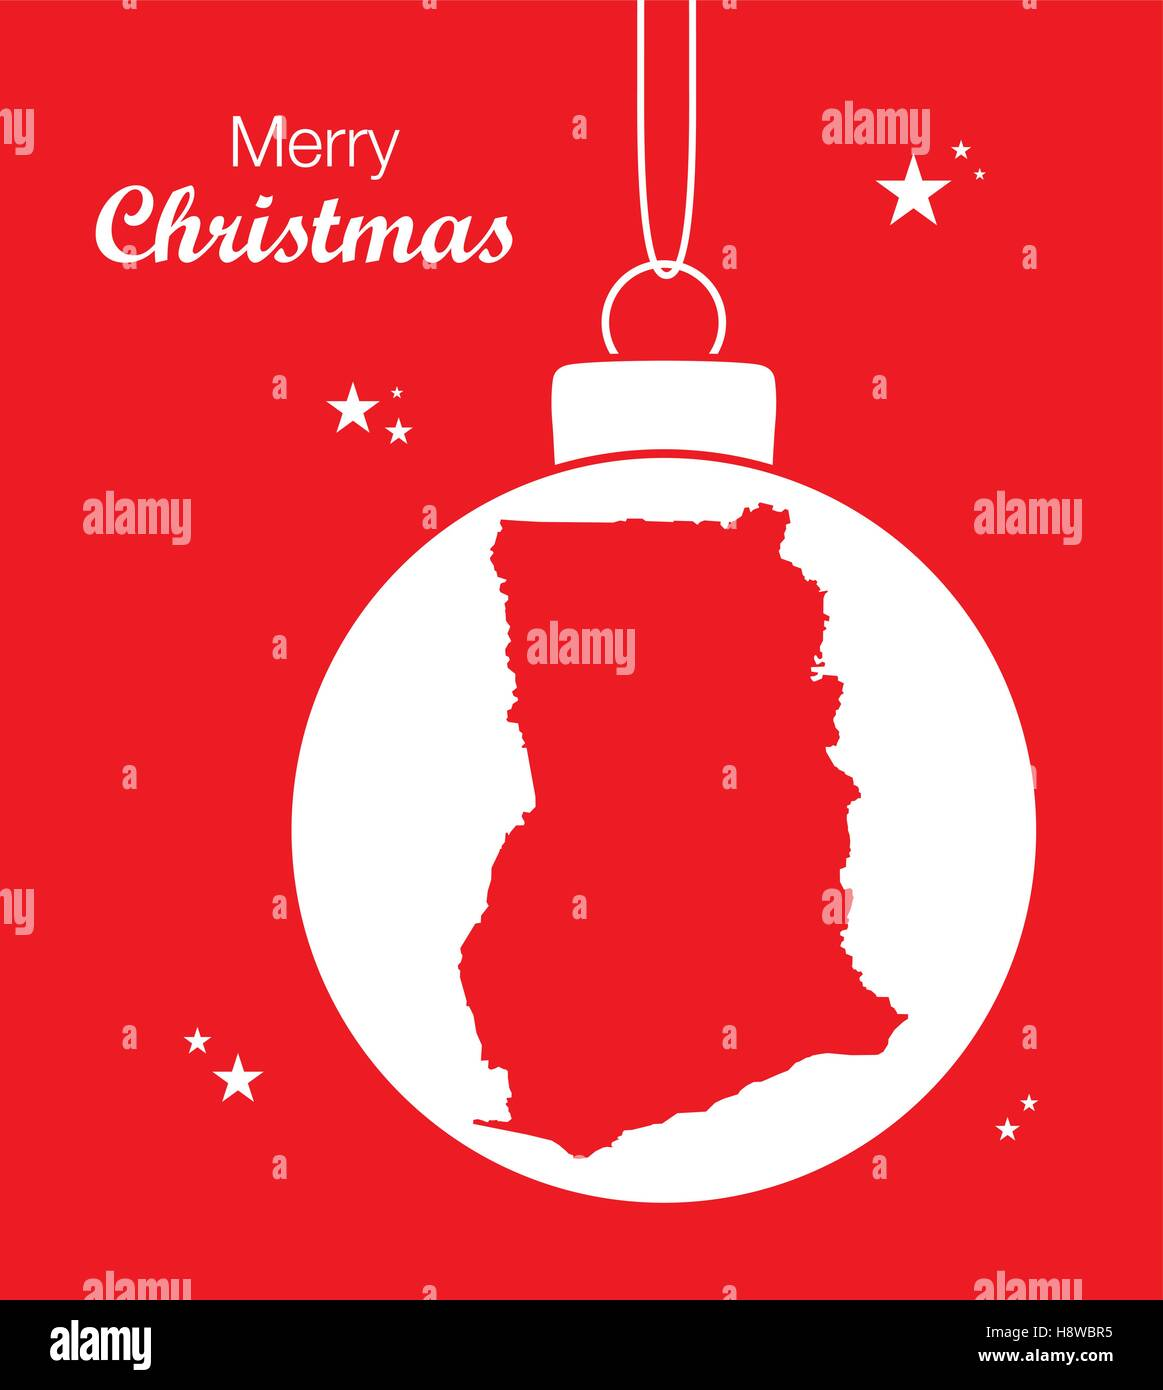 Merry Christmas illustration theme with map of Ghana - Stock Vector